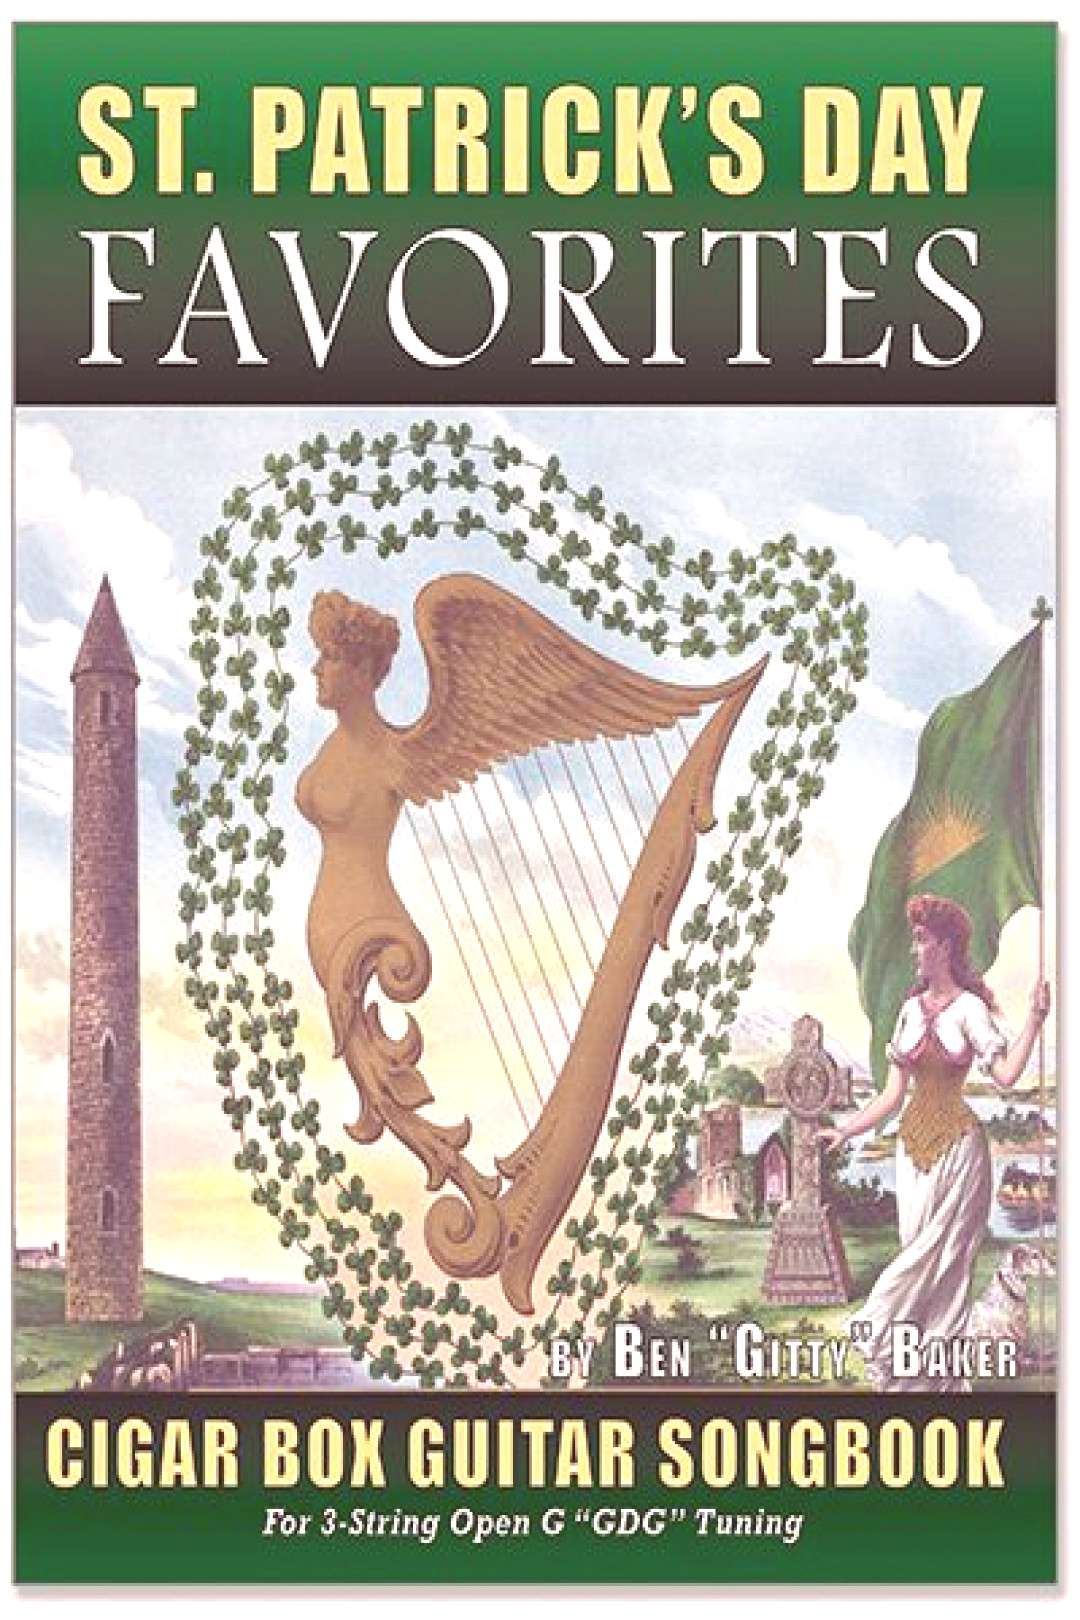 St. Patricks Day Favorites - 136-page Irish Songbook for Cigar Box Guitar - 35 songs!